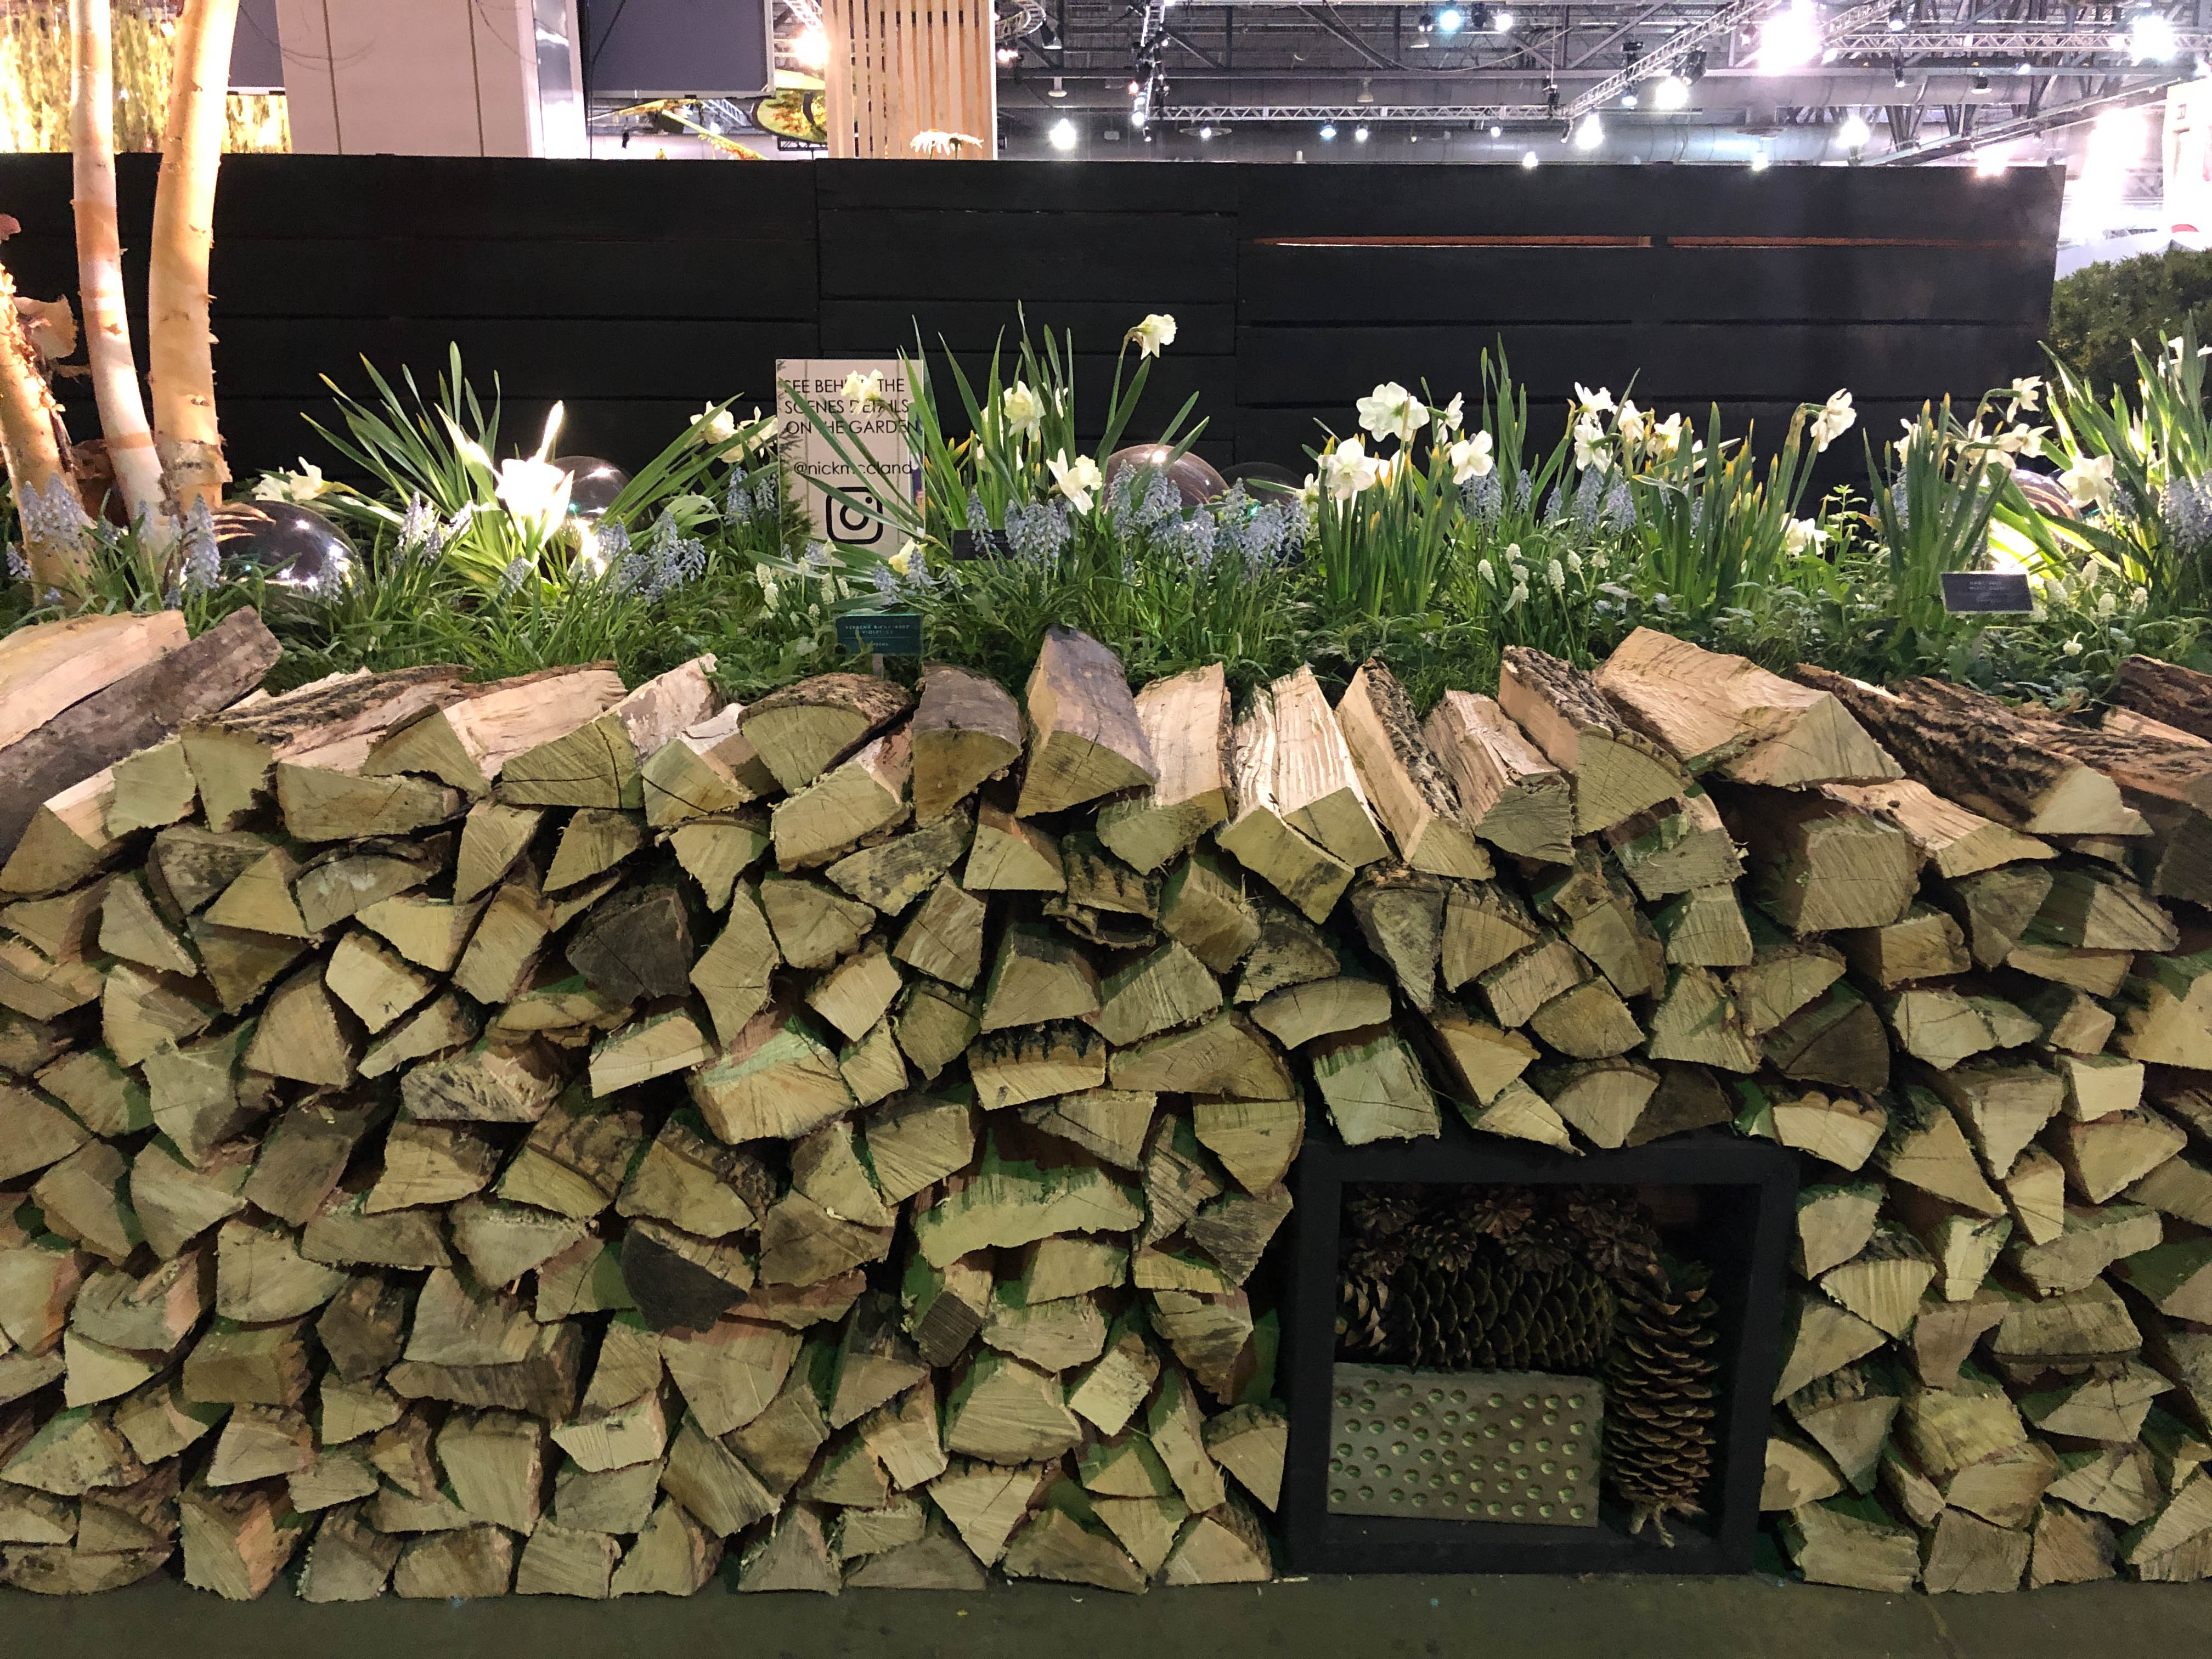 Behind the Design - Installing the Philadelphia Flower Show. Nick McCullough, McCullough's Landscape & Nursery